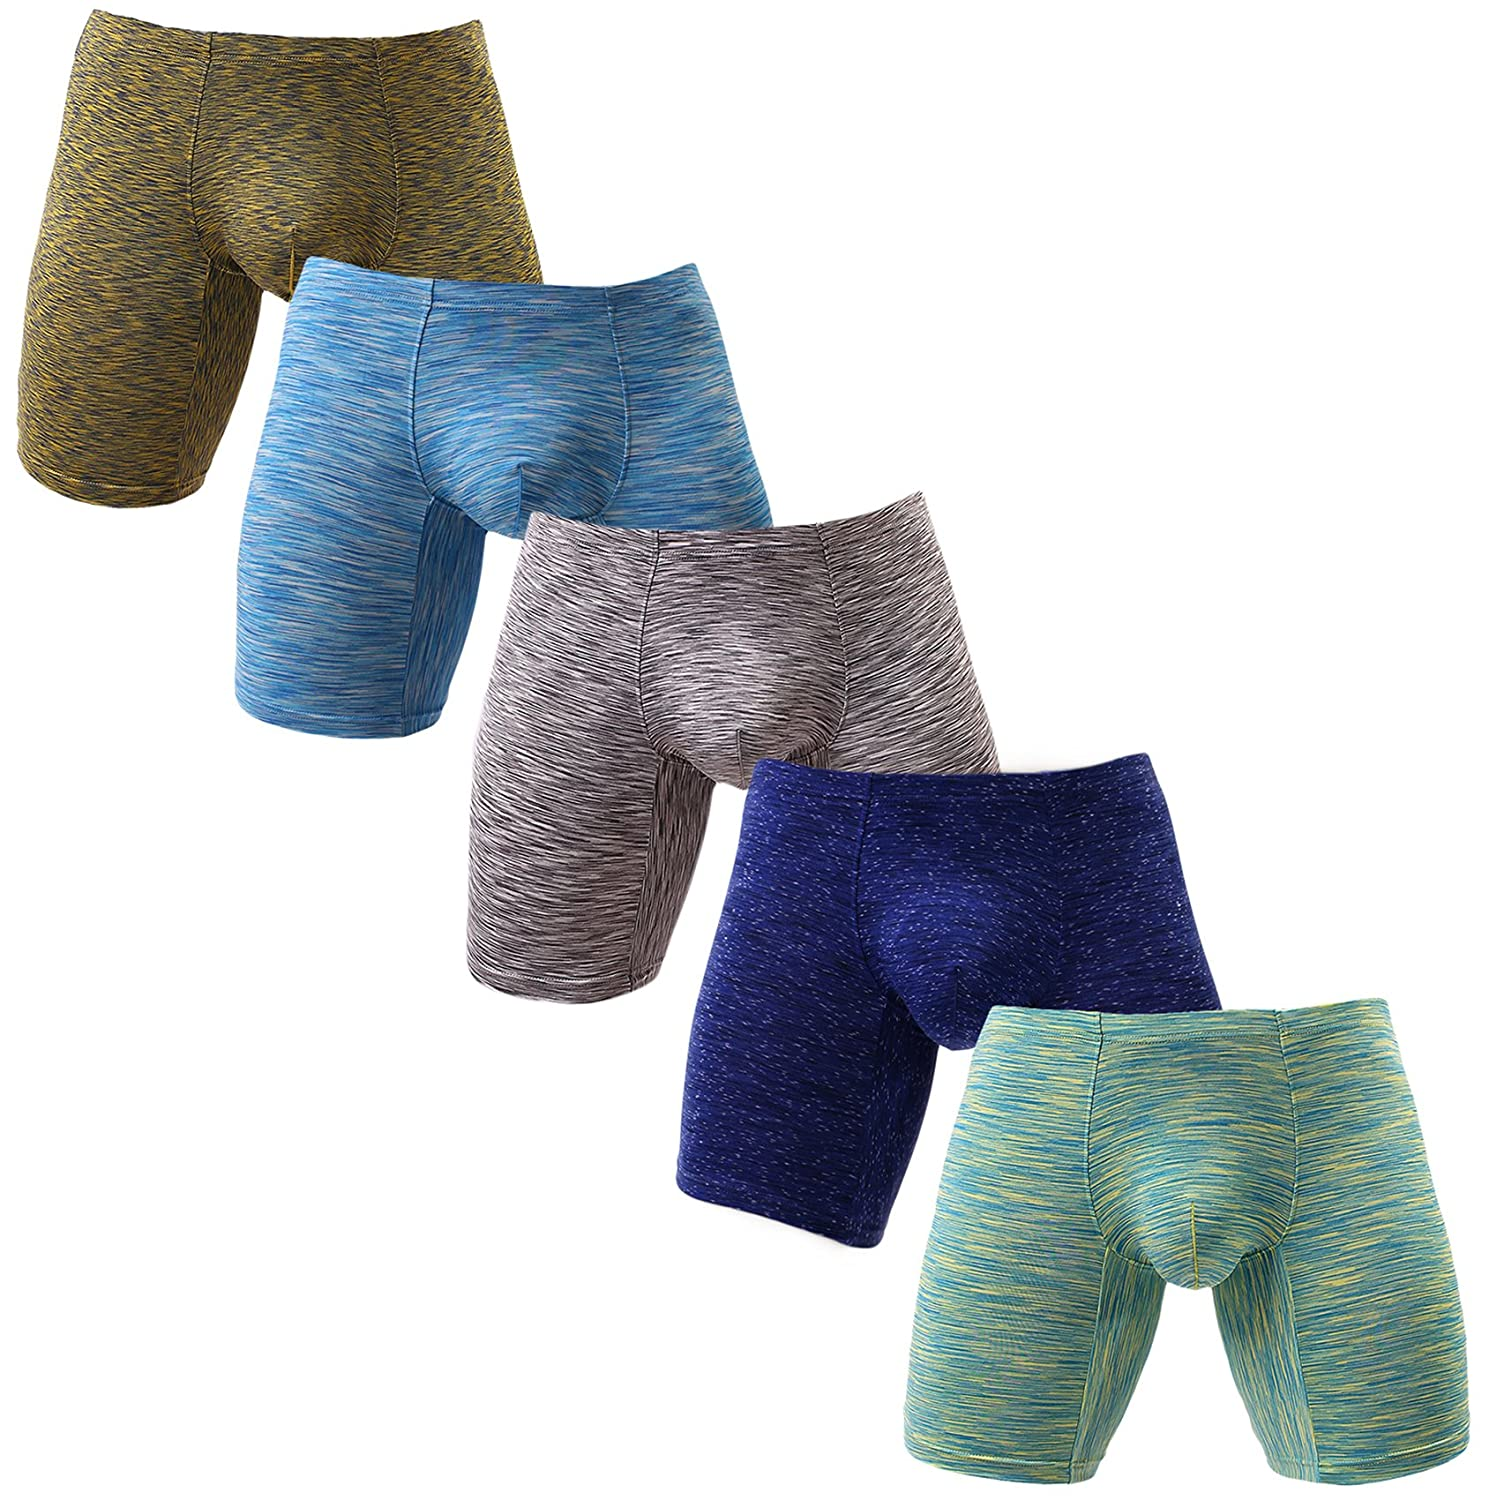 NEIKU UNDERWEAR メンズ B07B3M22VD X-Large|5 Pack Mixed Color 5 Pack Mixed Color X-Large